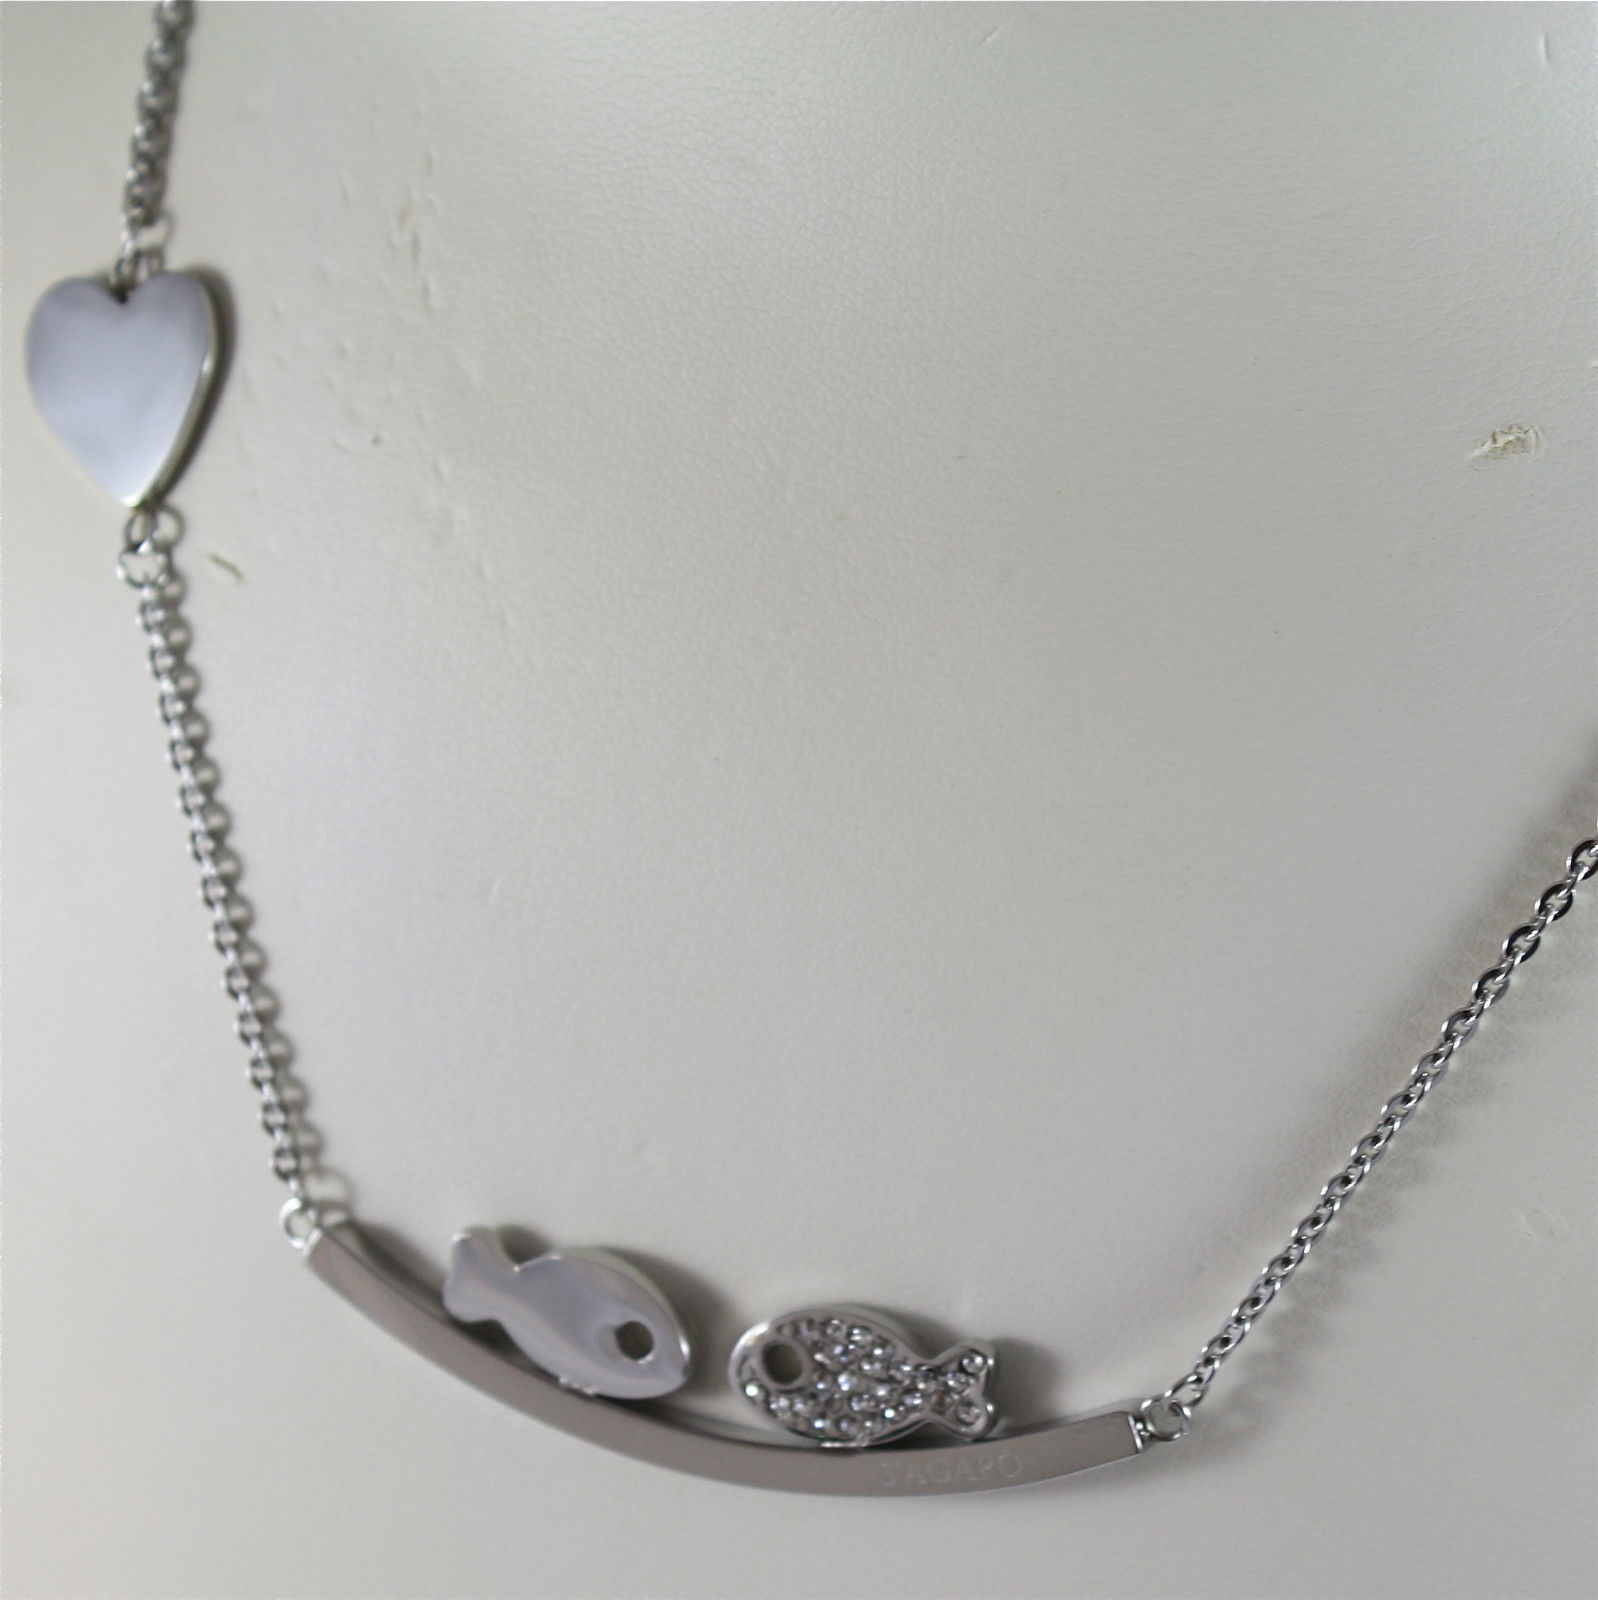 S'AGAPO' NECKLACE, 316L STEEL, KISSING FISHES, FACETED CRYSTALS.